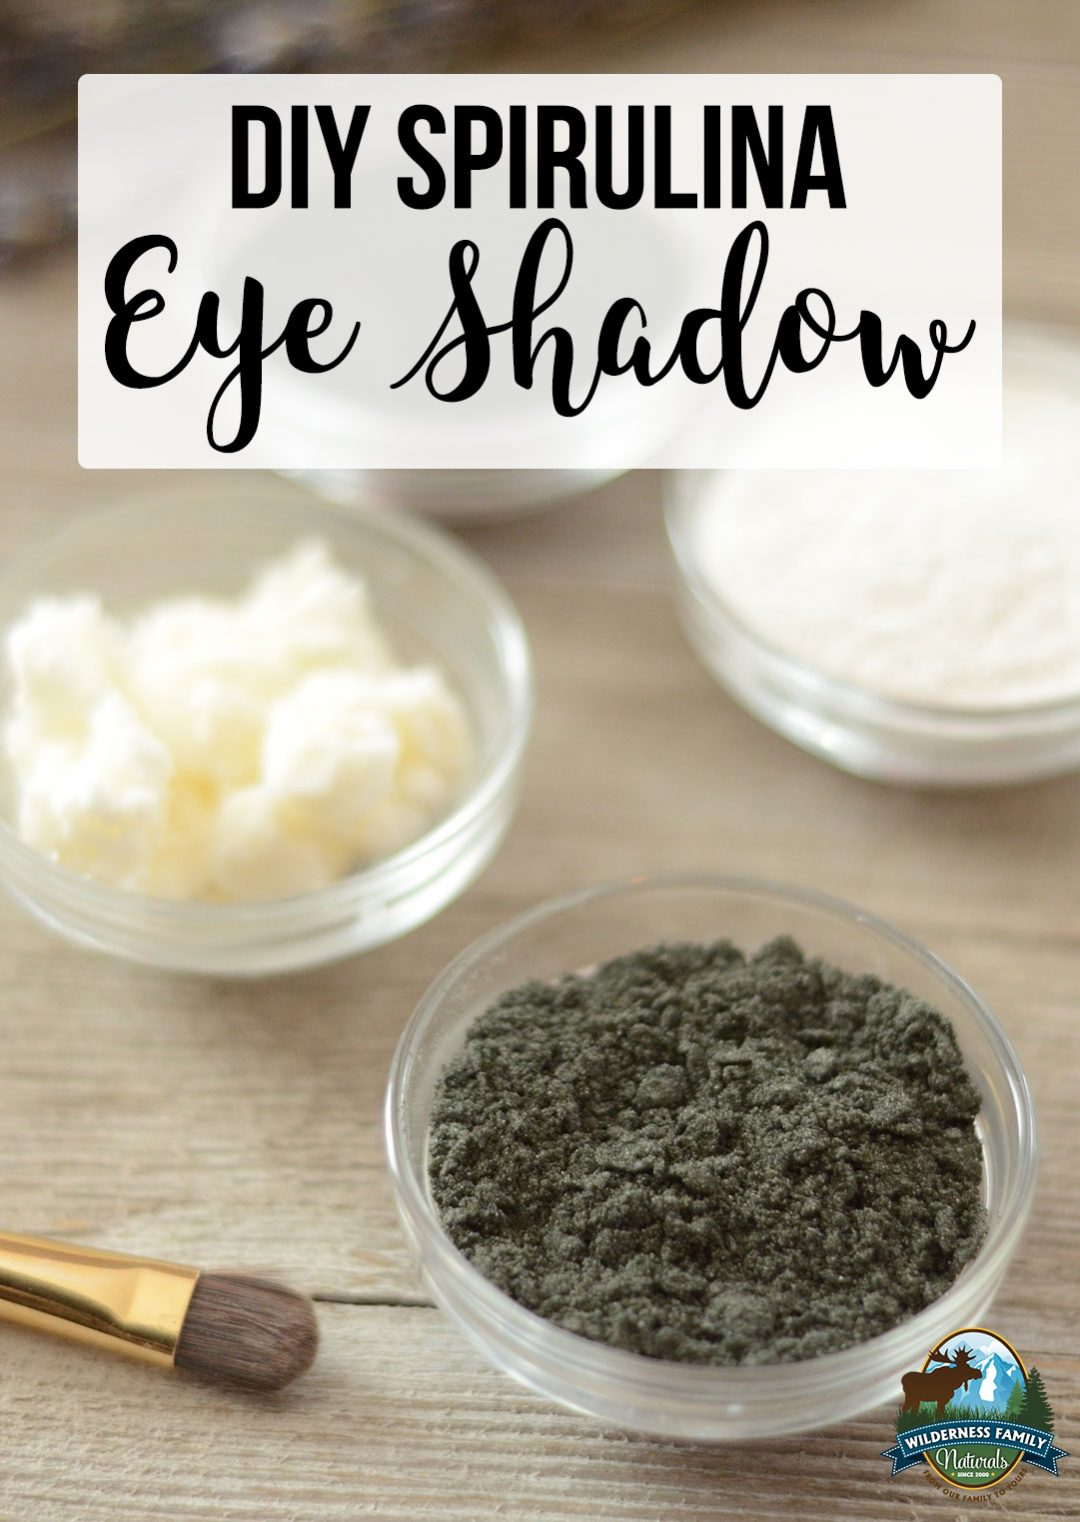 DIY Spirulina Eye Shadow | Homemade eye shadow is a great way to avoid toxins found in most conventional eye shadows. Create a lovely, all-natural green eye shadow with some superfood ingredients. This recipe is non-toxic and totally customizable! | WildernessFamilyNaturals.com